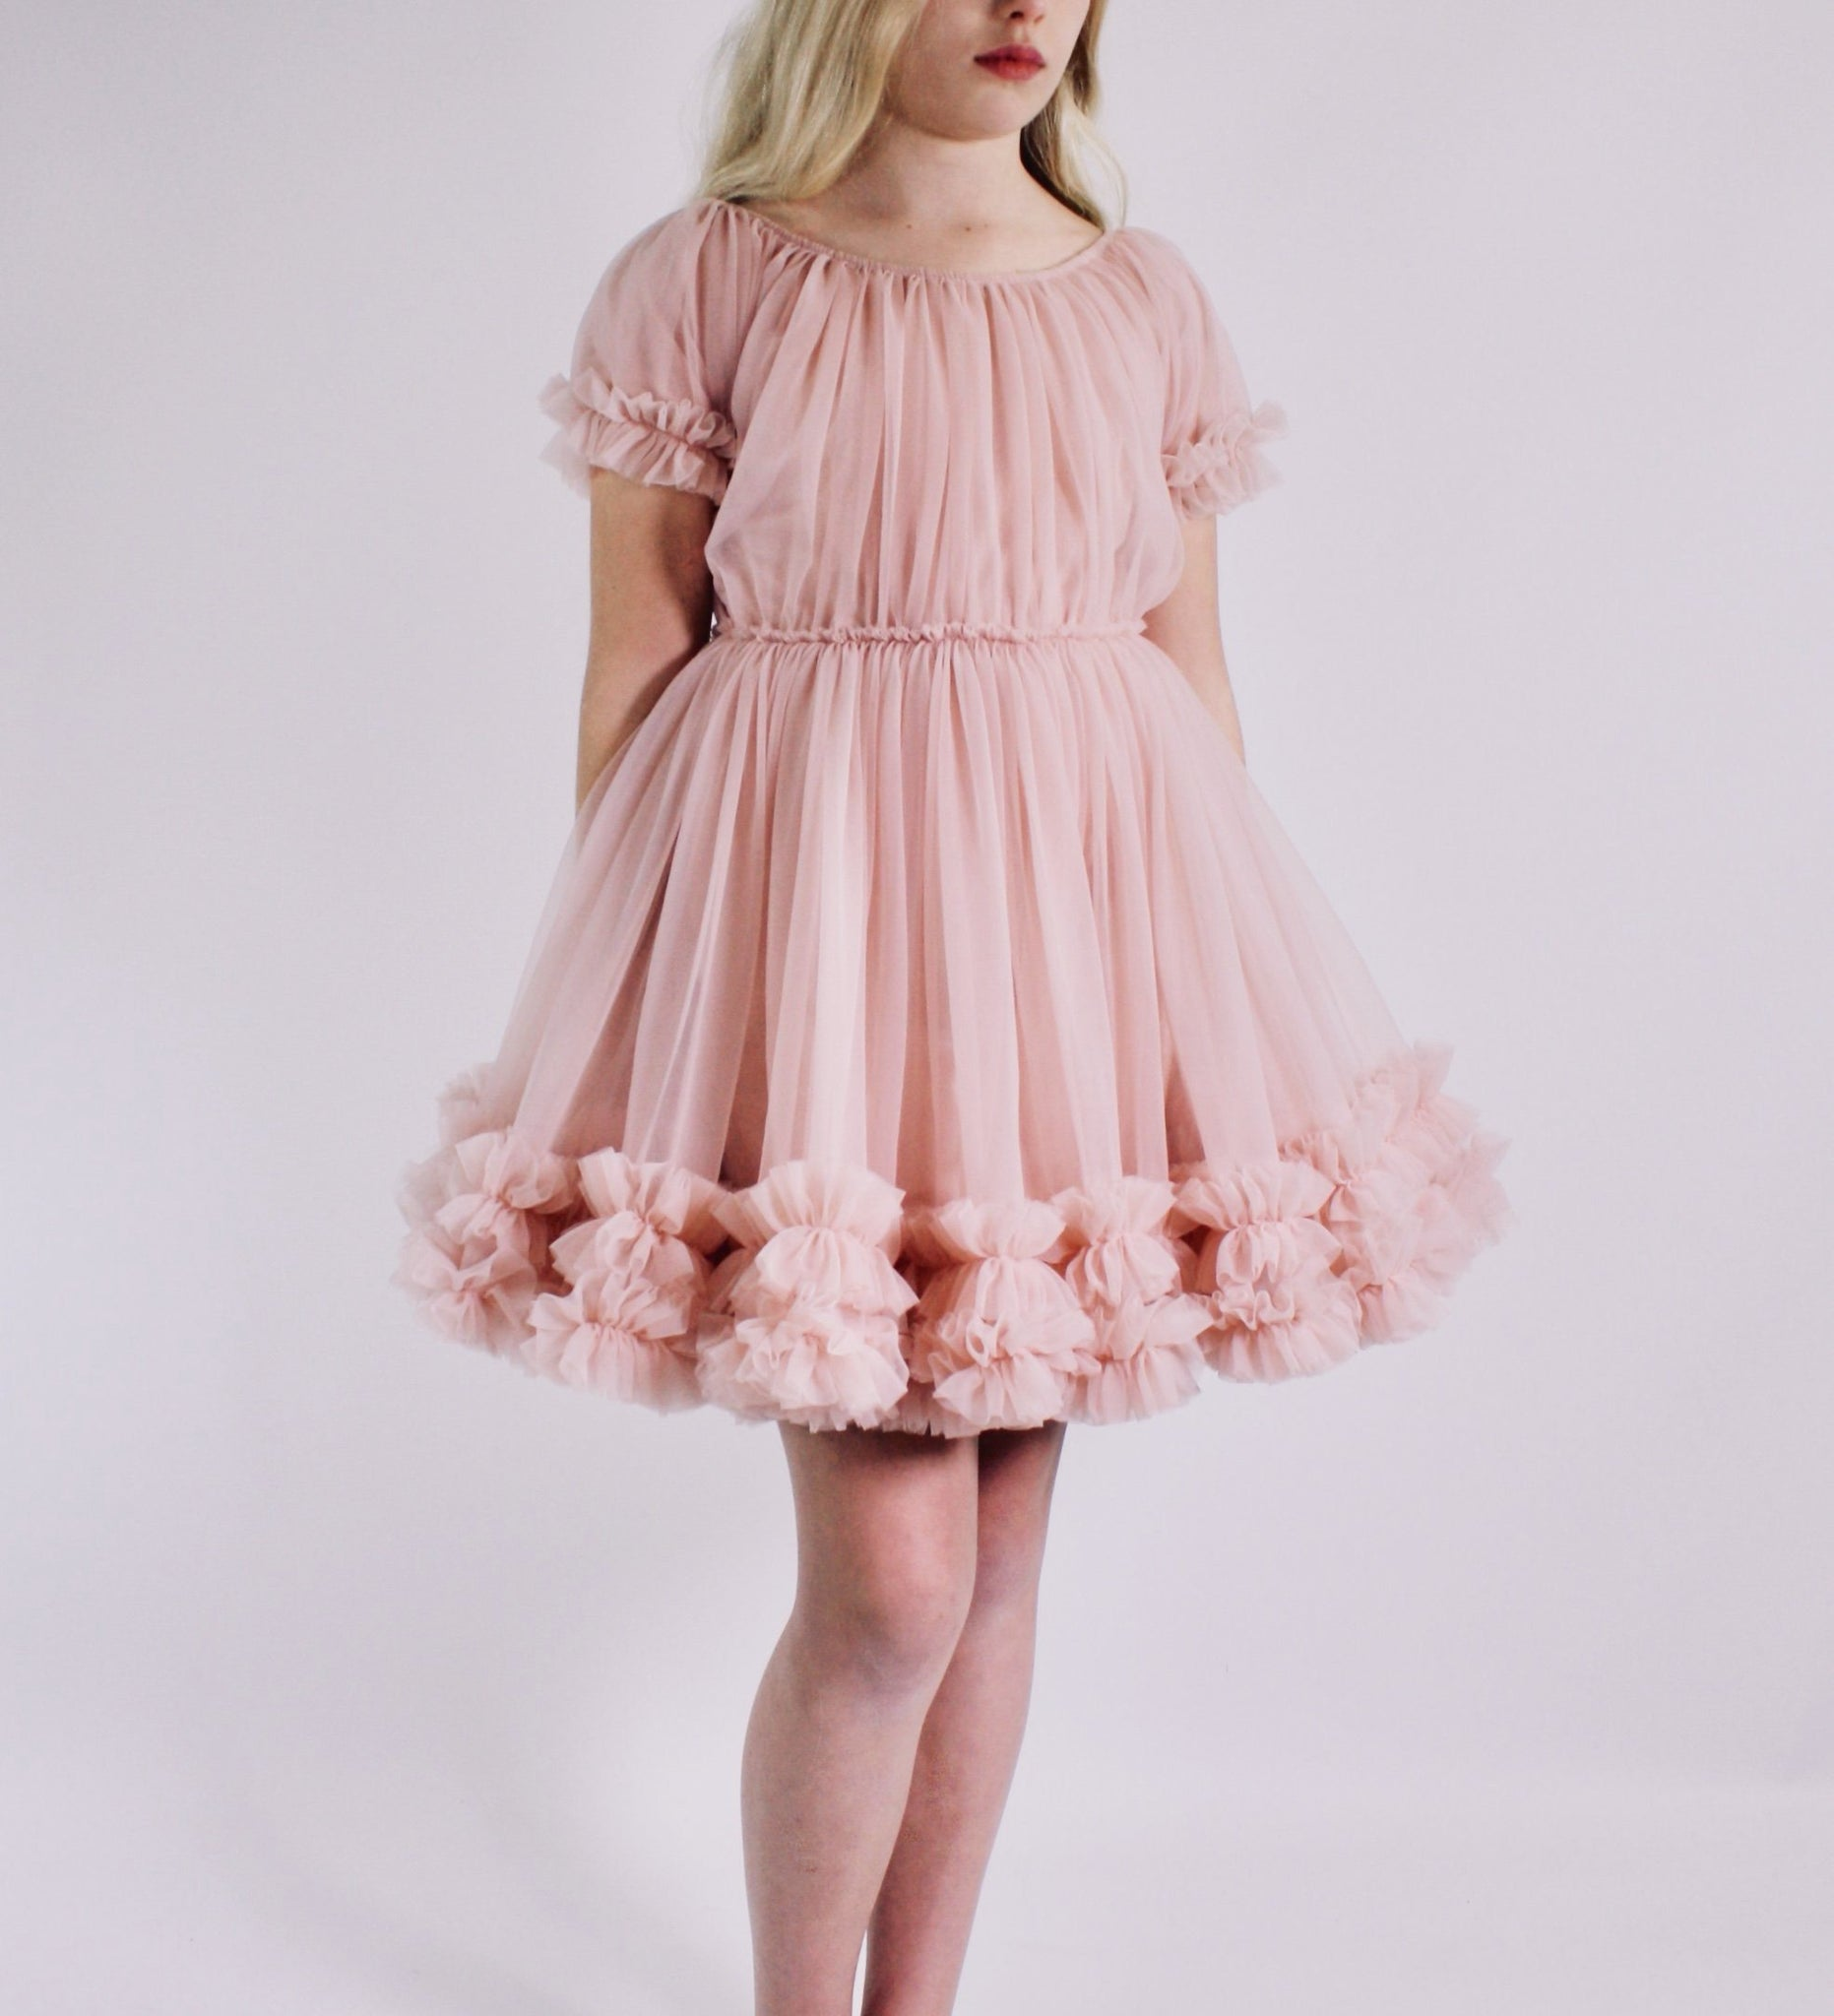 Frilly Dress